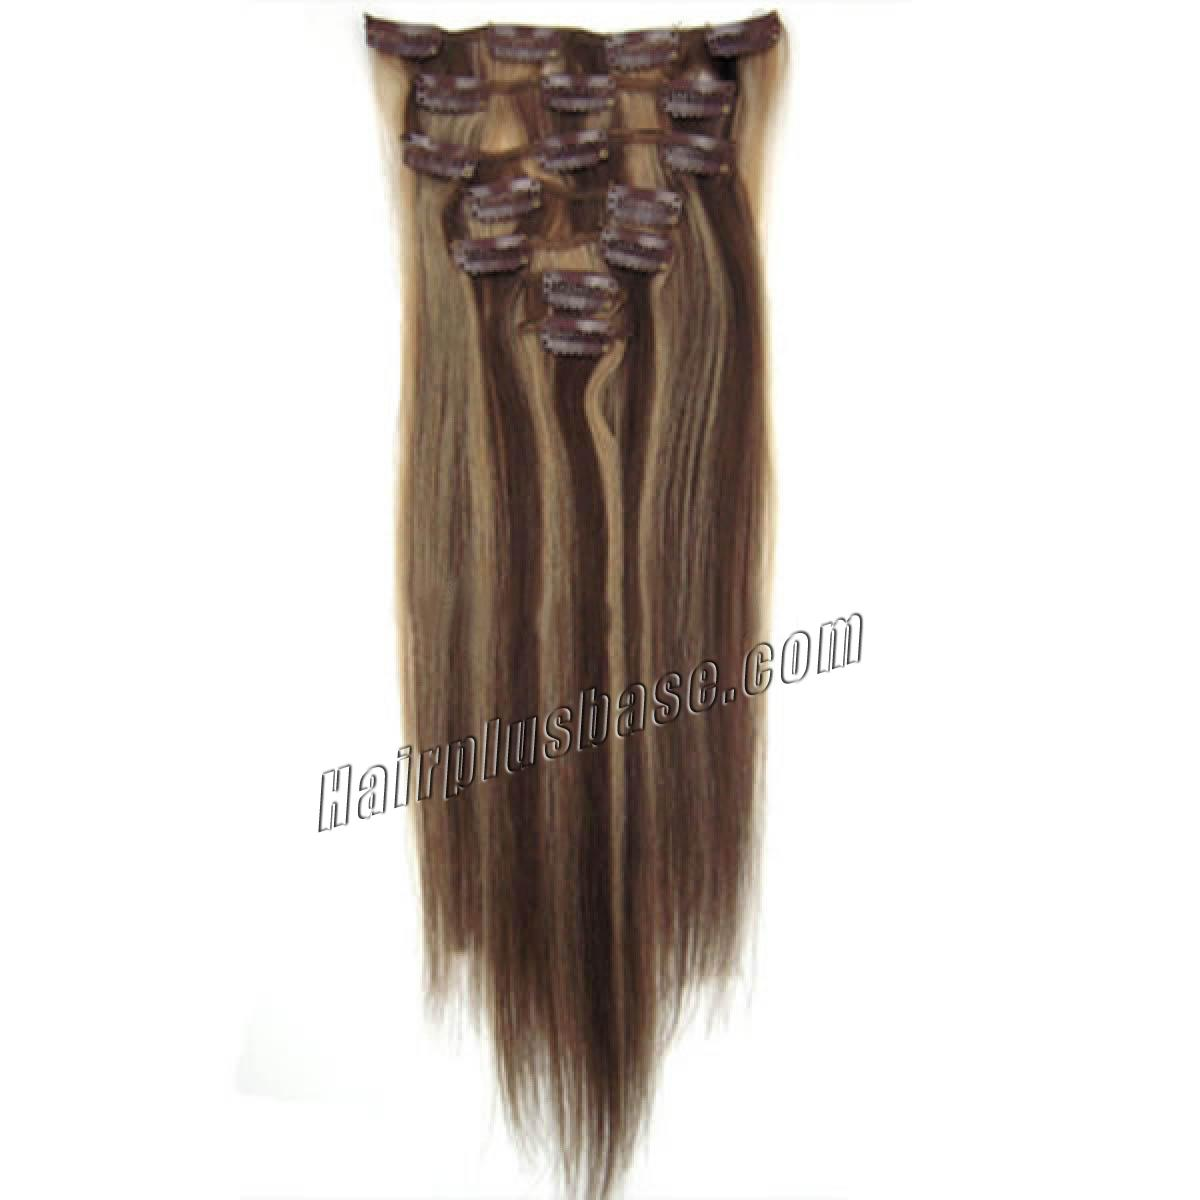 34 inch 427 brownblonde clip in human hair extensions 11pcs 34 inch 4 27 brown blonde clip in human hair extensions 11pcs 10041 1v pmusecretfo Choice Image